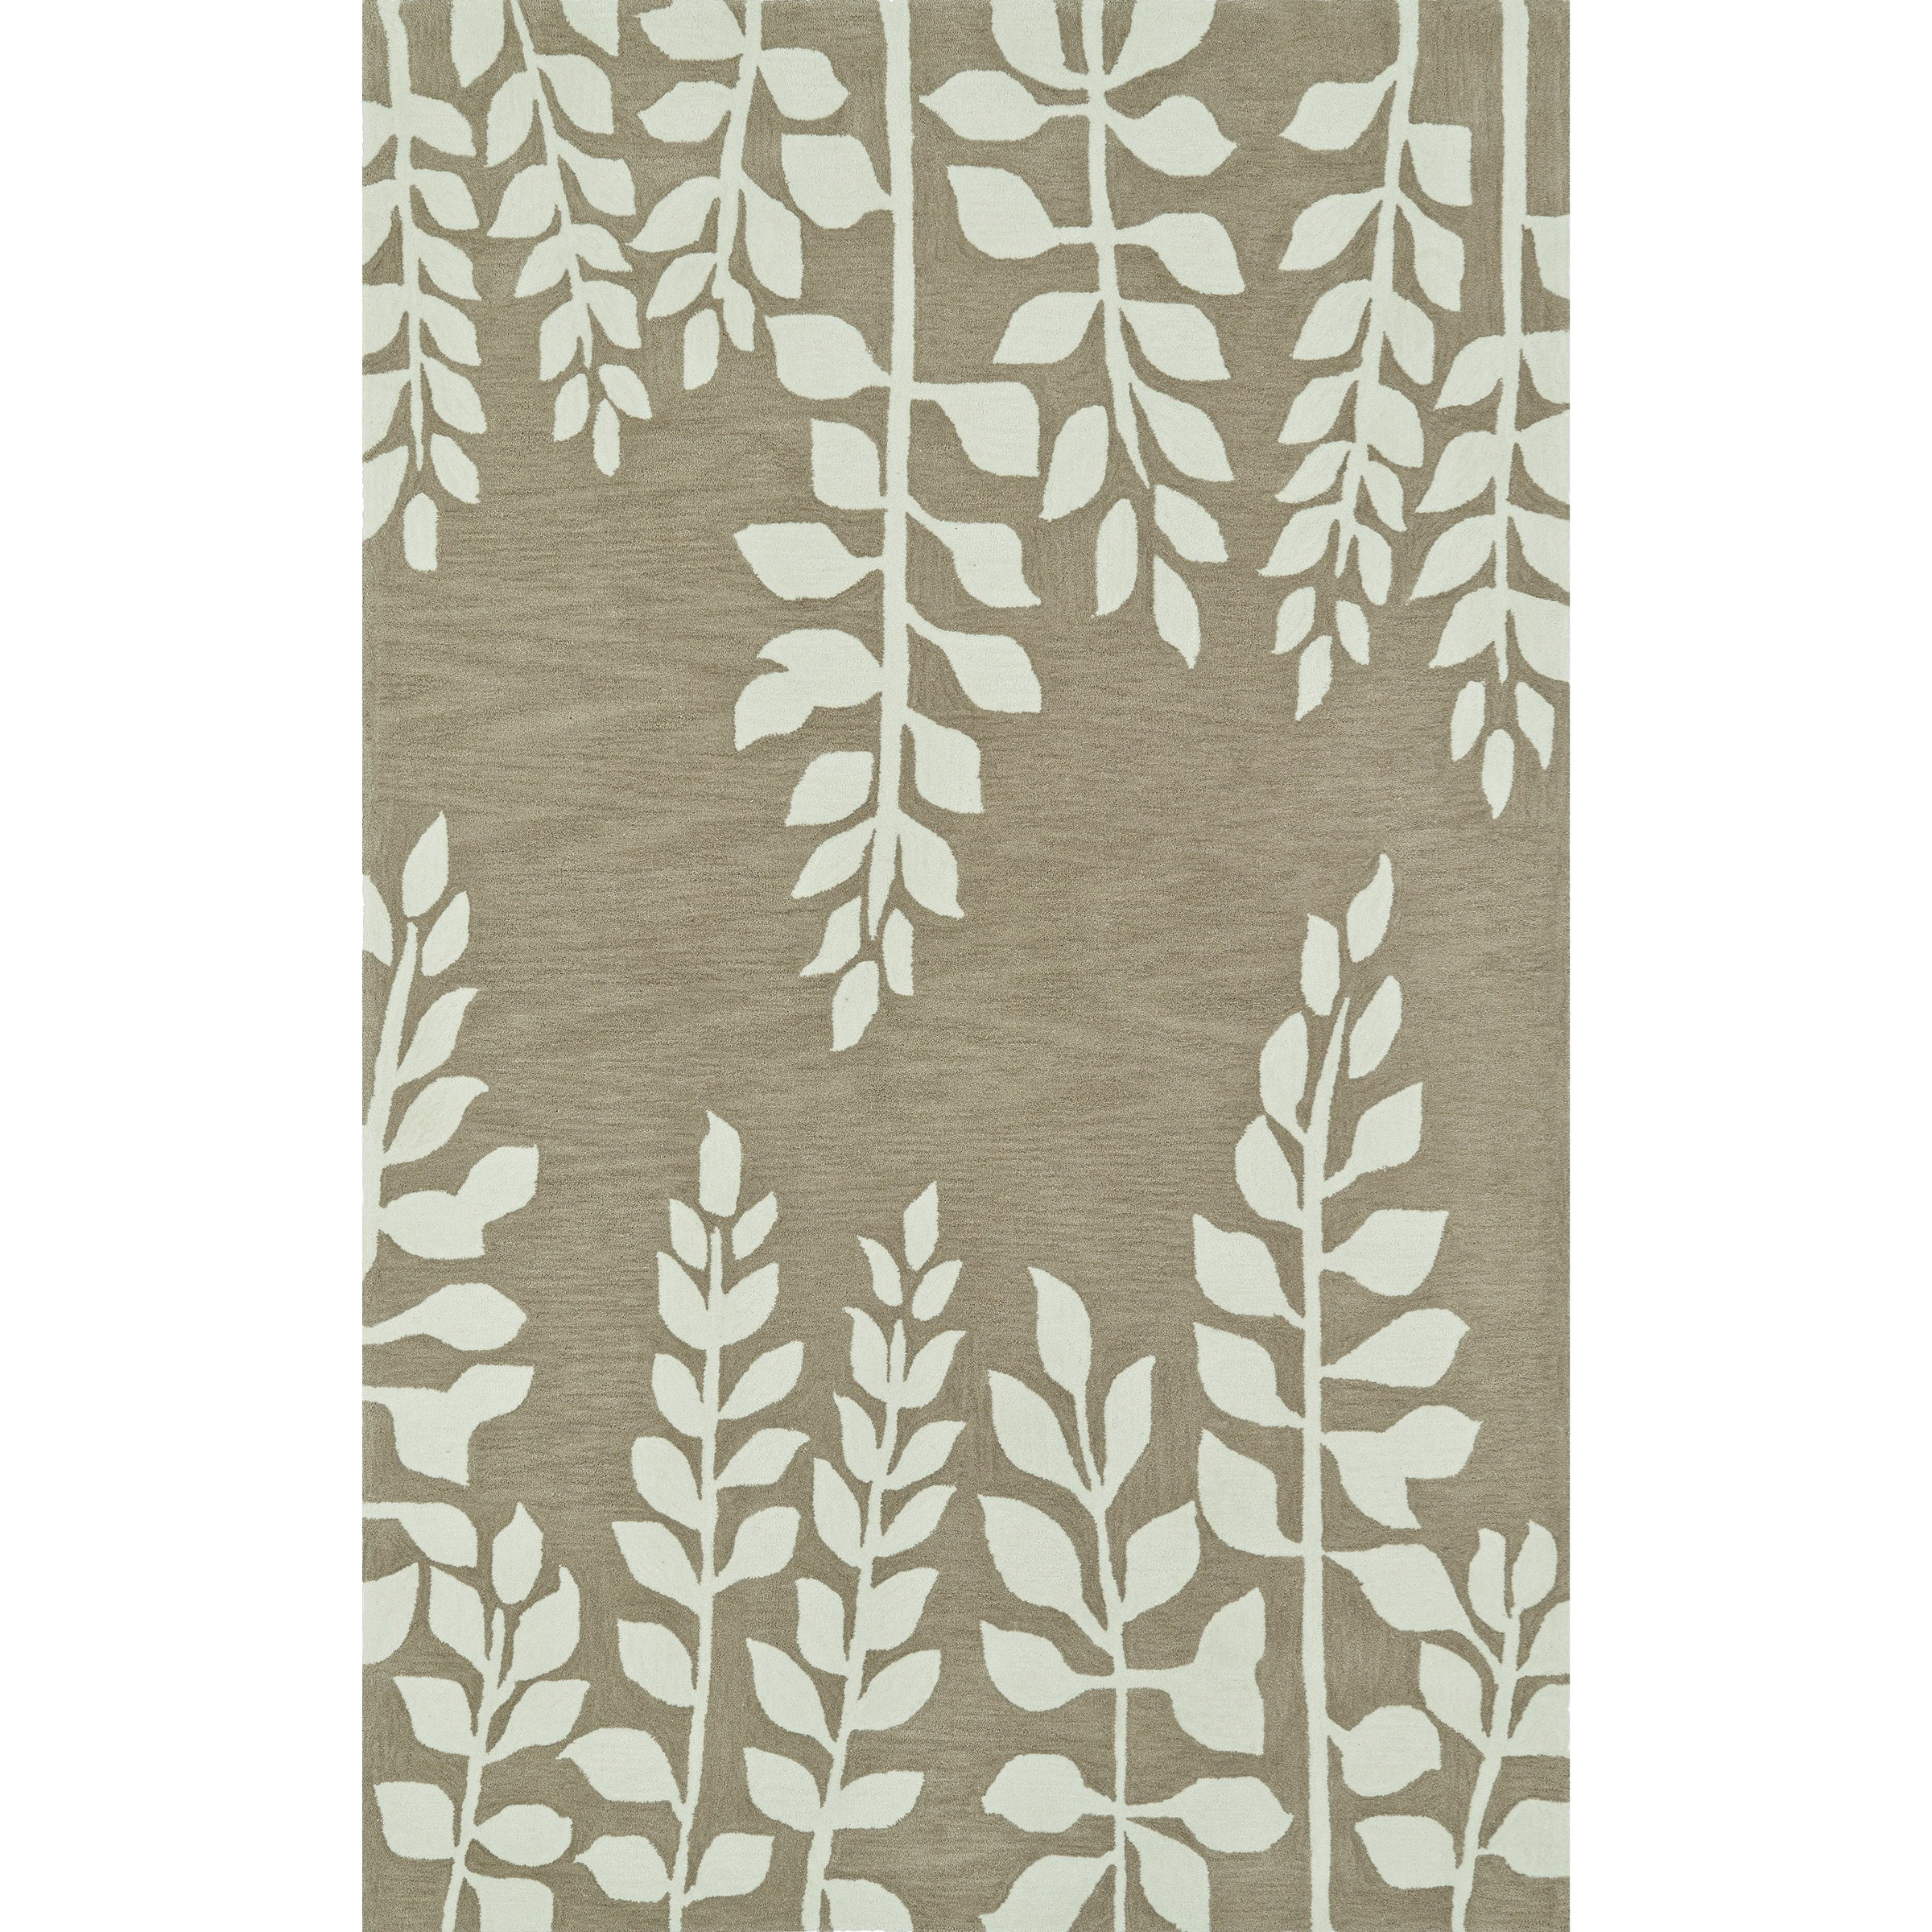 Journey Khaki 8' x 10' Rug by Dalyn at Sadler's Home Furnishings